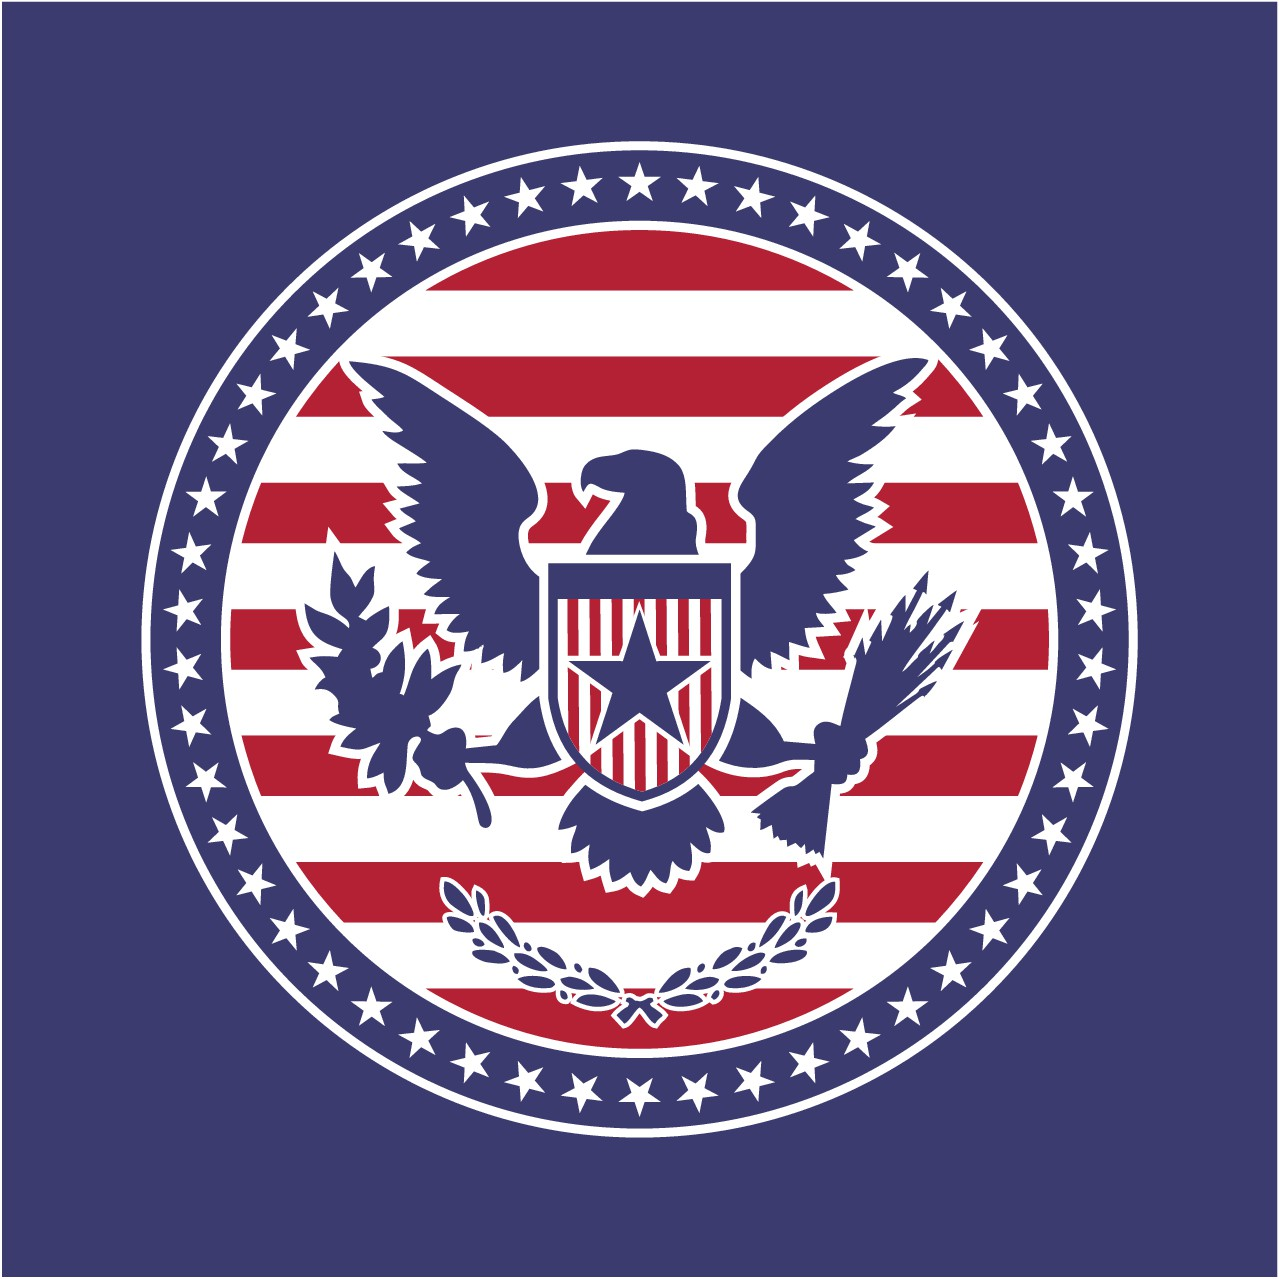 Redesign the American Flag